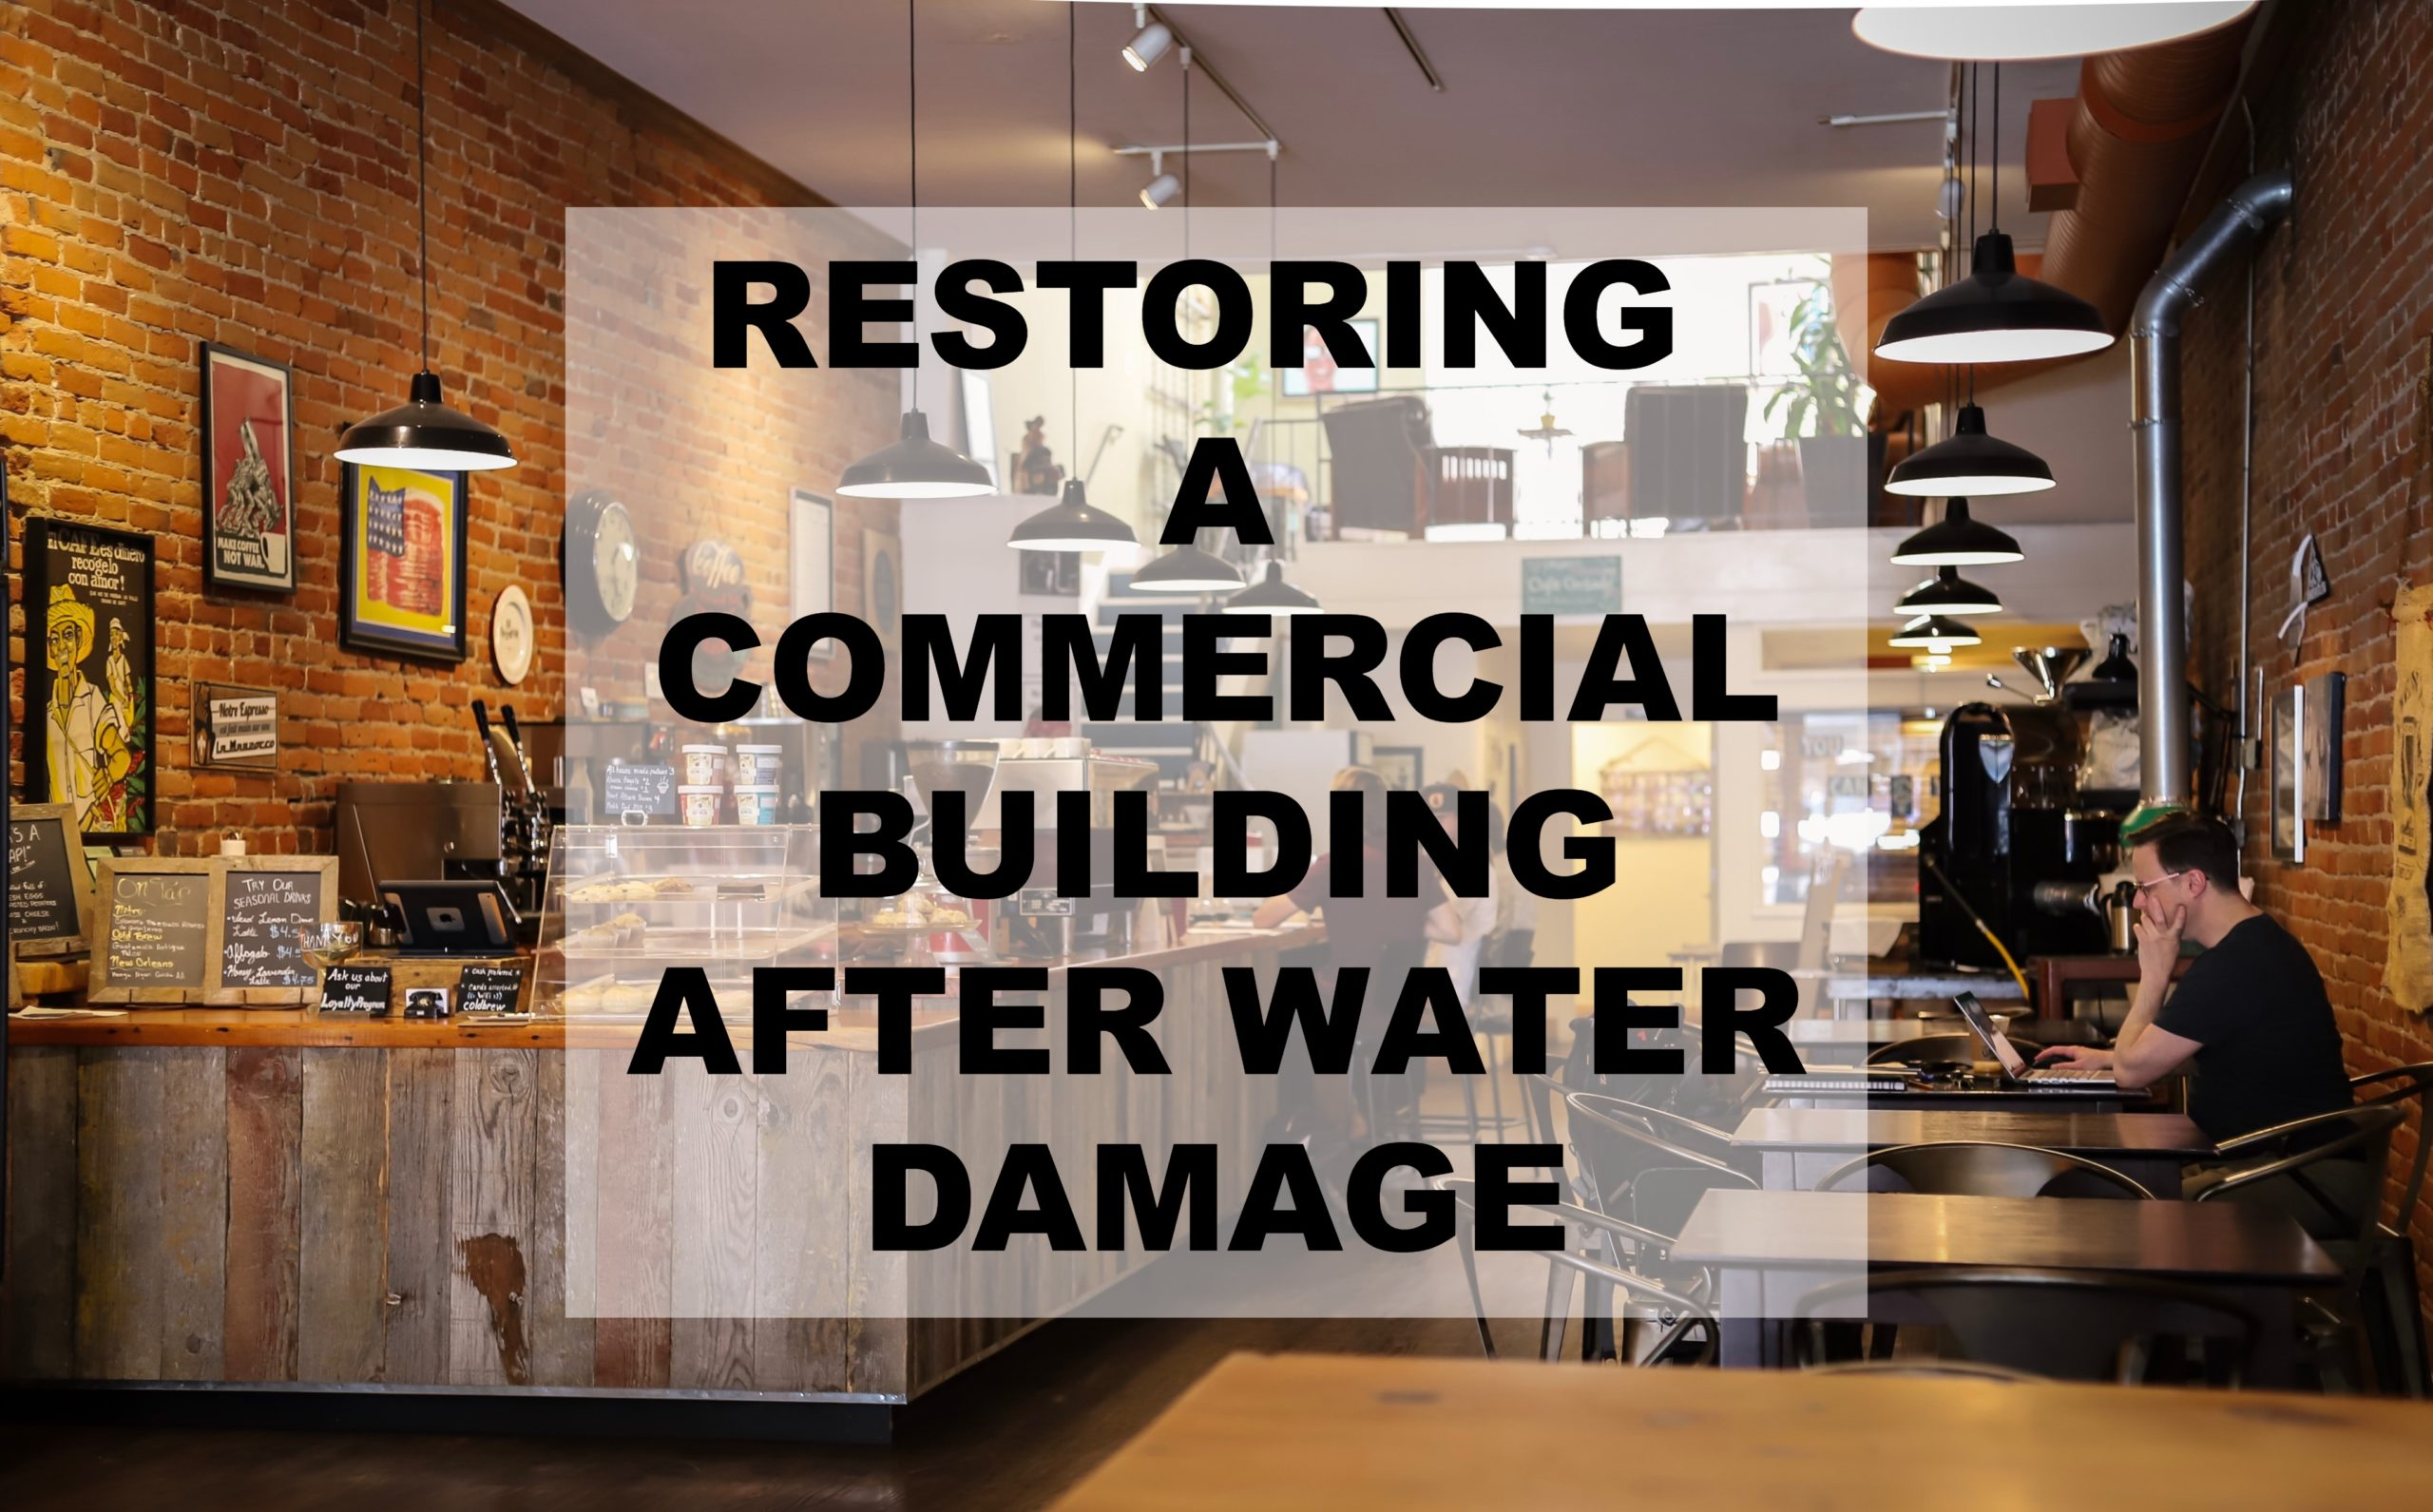 Restoring a Commercial Building After Water Damage